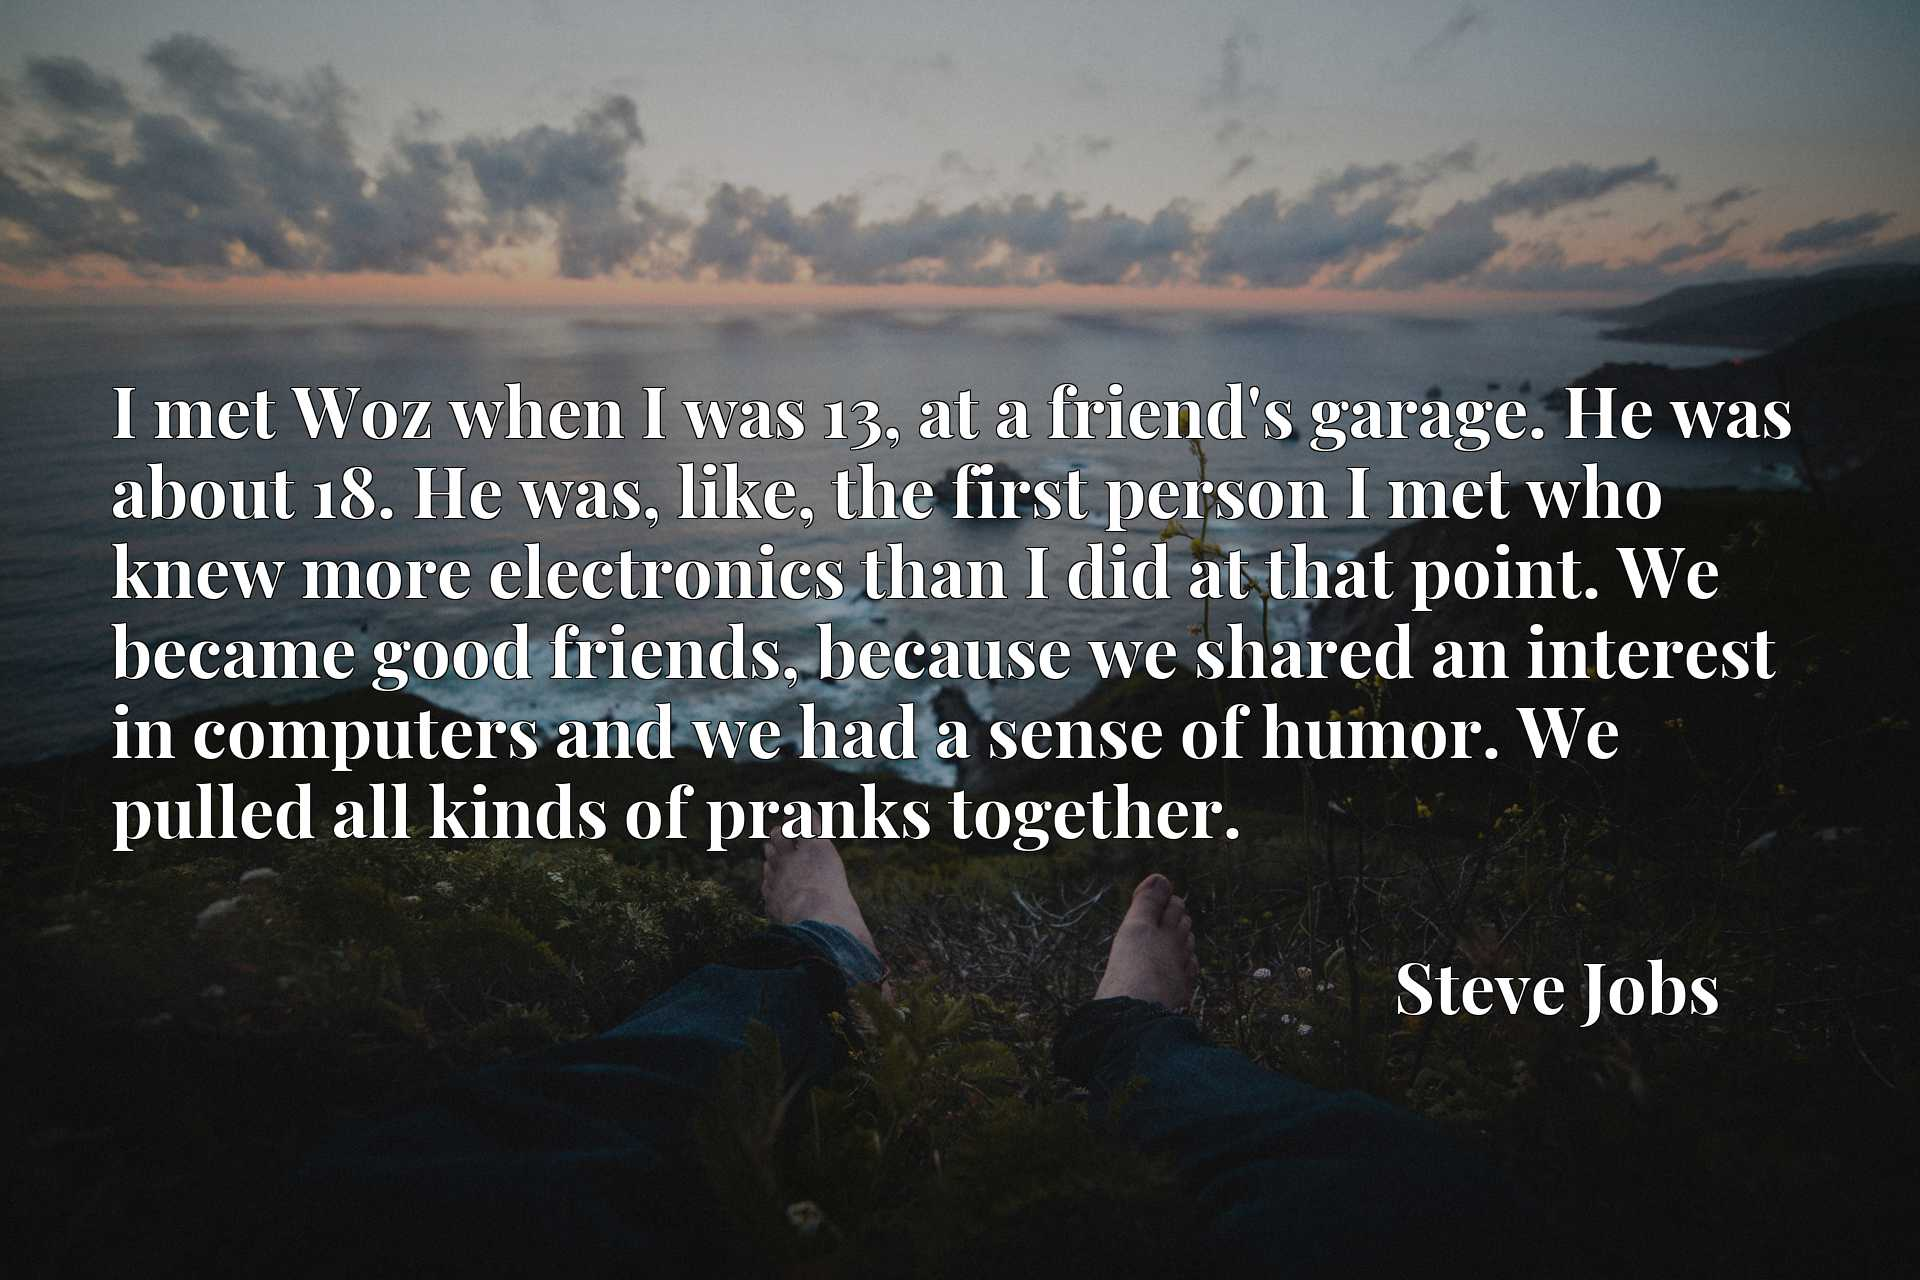 I met Woz when I was 13, at a friend's garage. He was about 18. He was, like, the first person I met who knew more electronics than I did at that point. We became good friends, because we shared an interest in computers and we had a sense of humor. We pulled all kinds of pranks together.